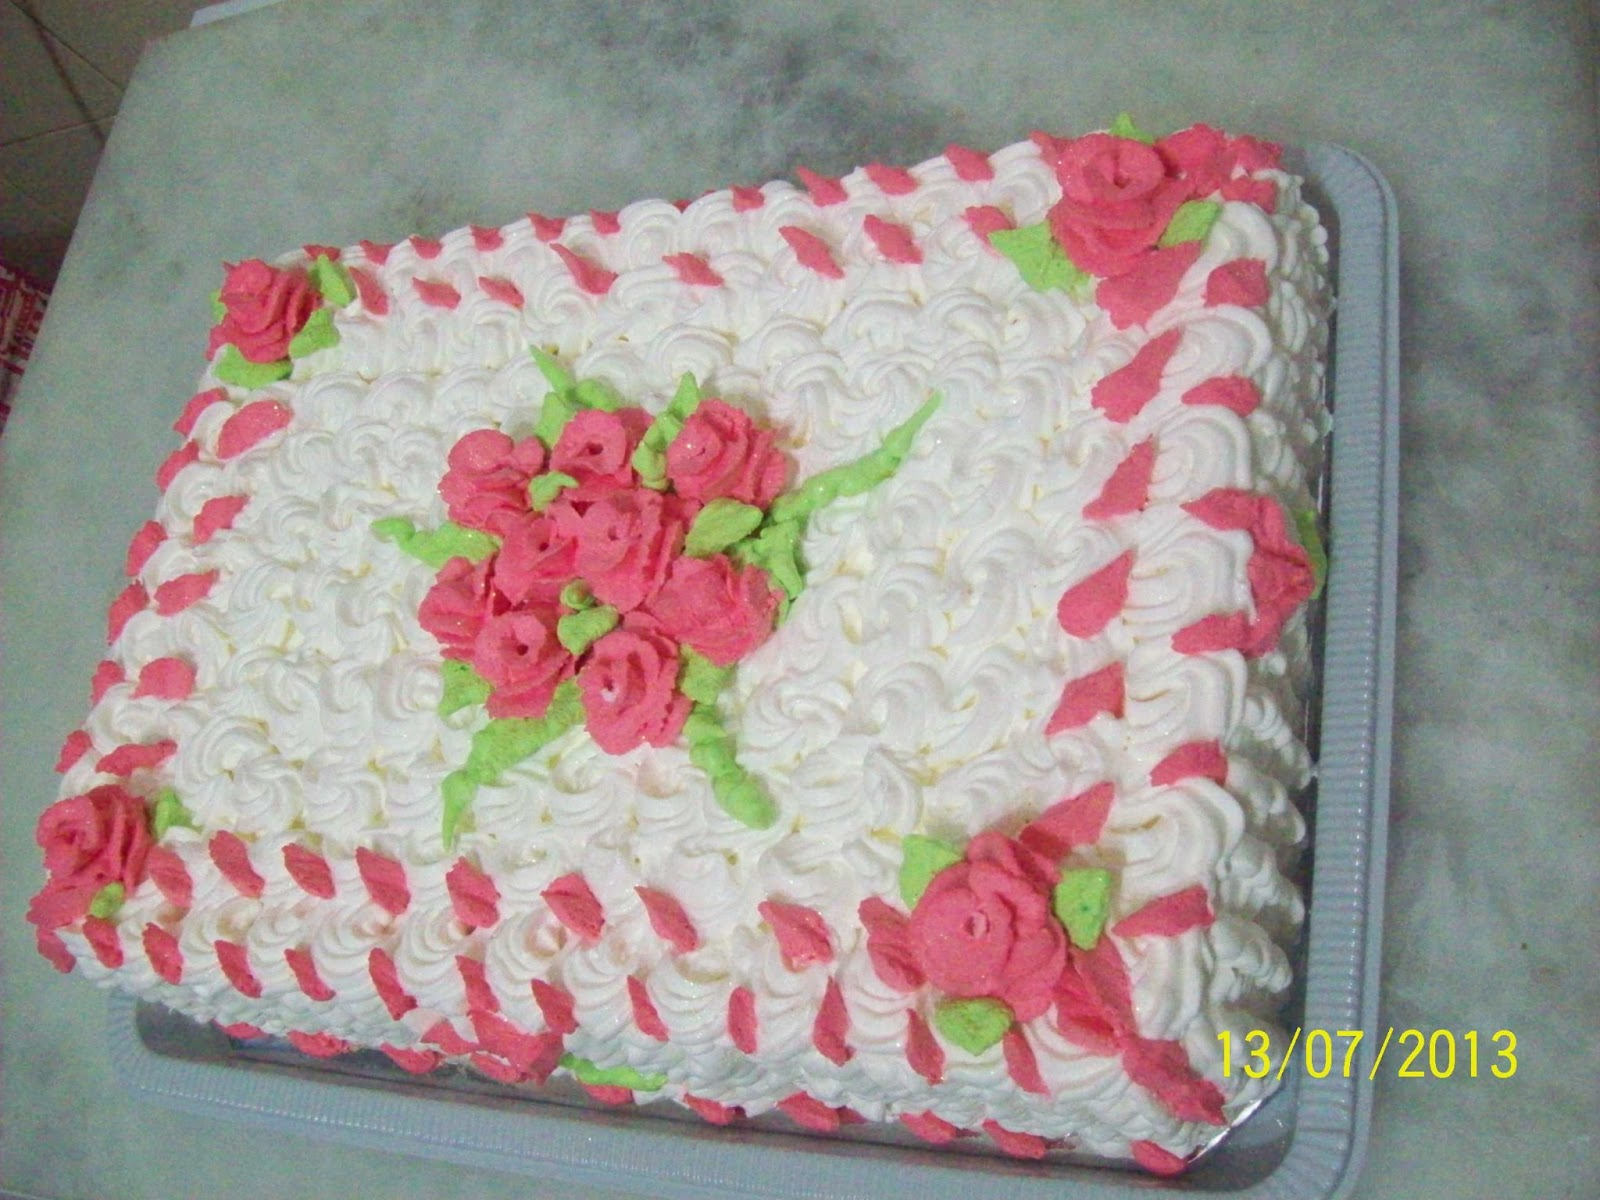 Nanda Bolos: BOLO DECORADO COM ROSAS DE CHANTILLY